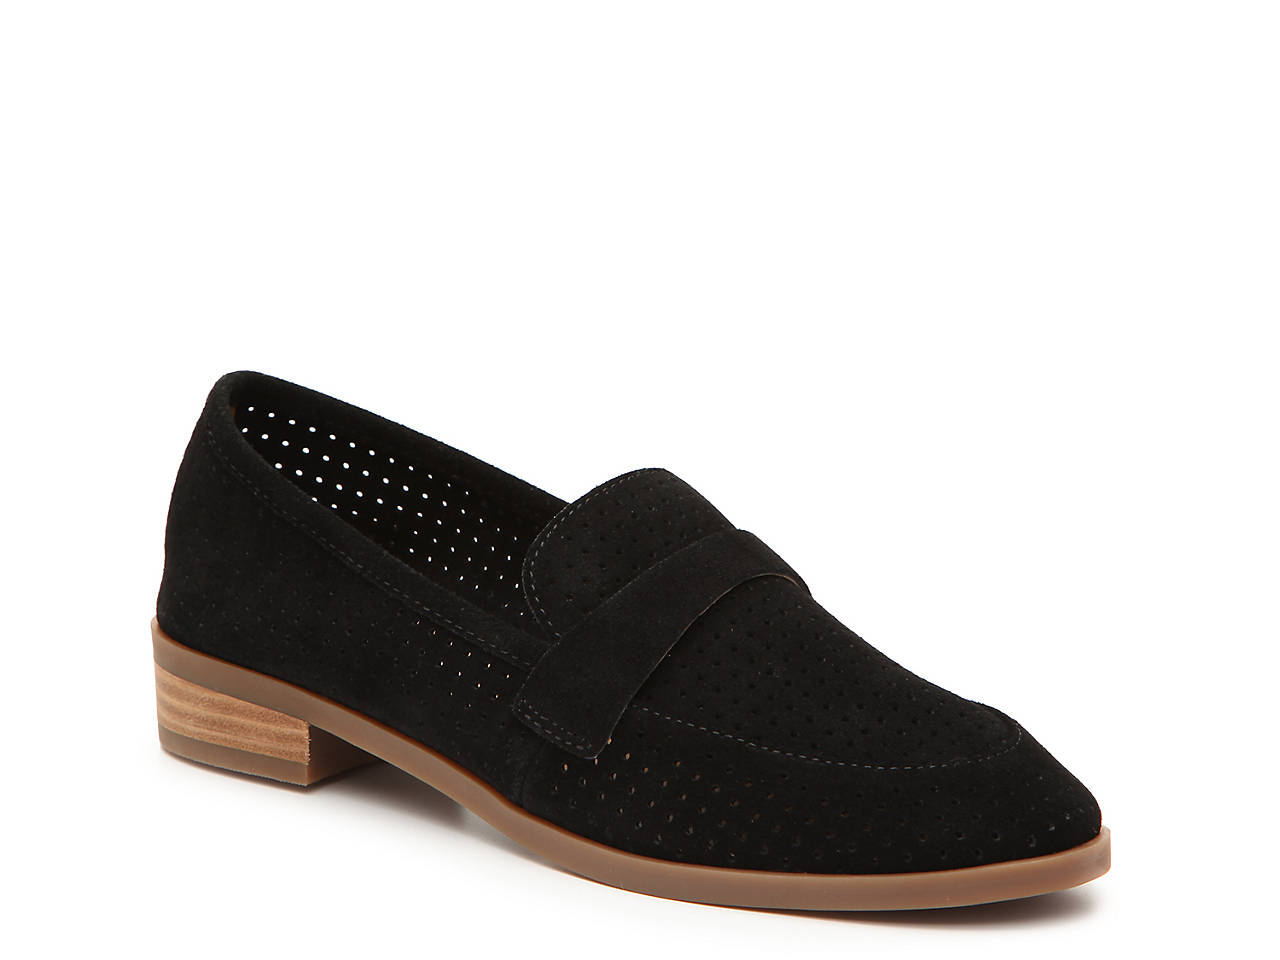 08a52bd38 Lucky Brand Caviep Loafer Women's Shoes   DSW